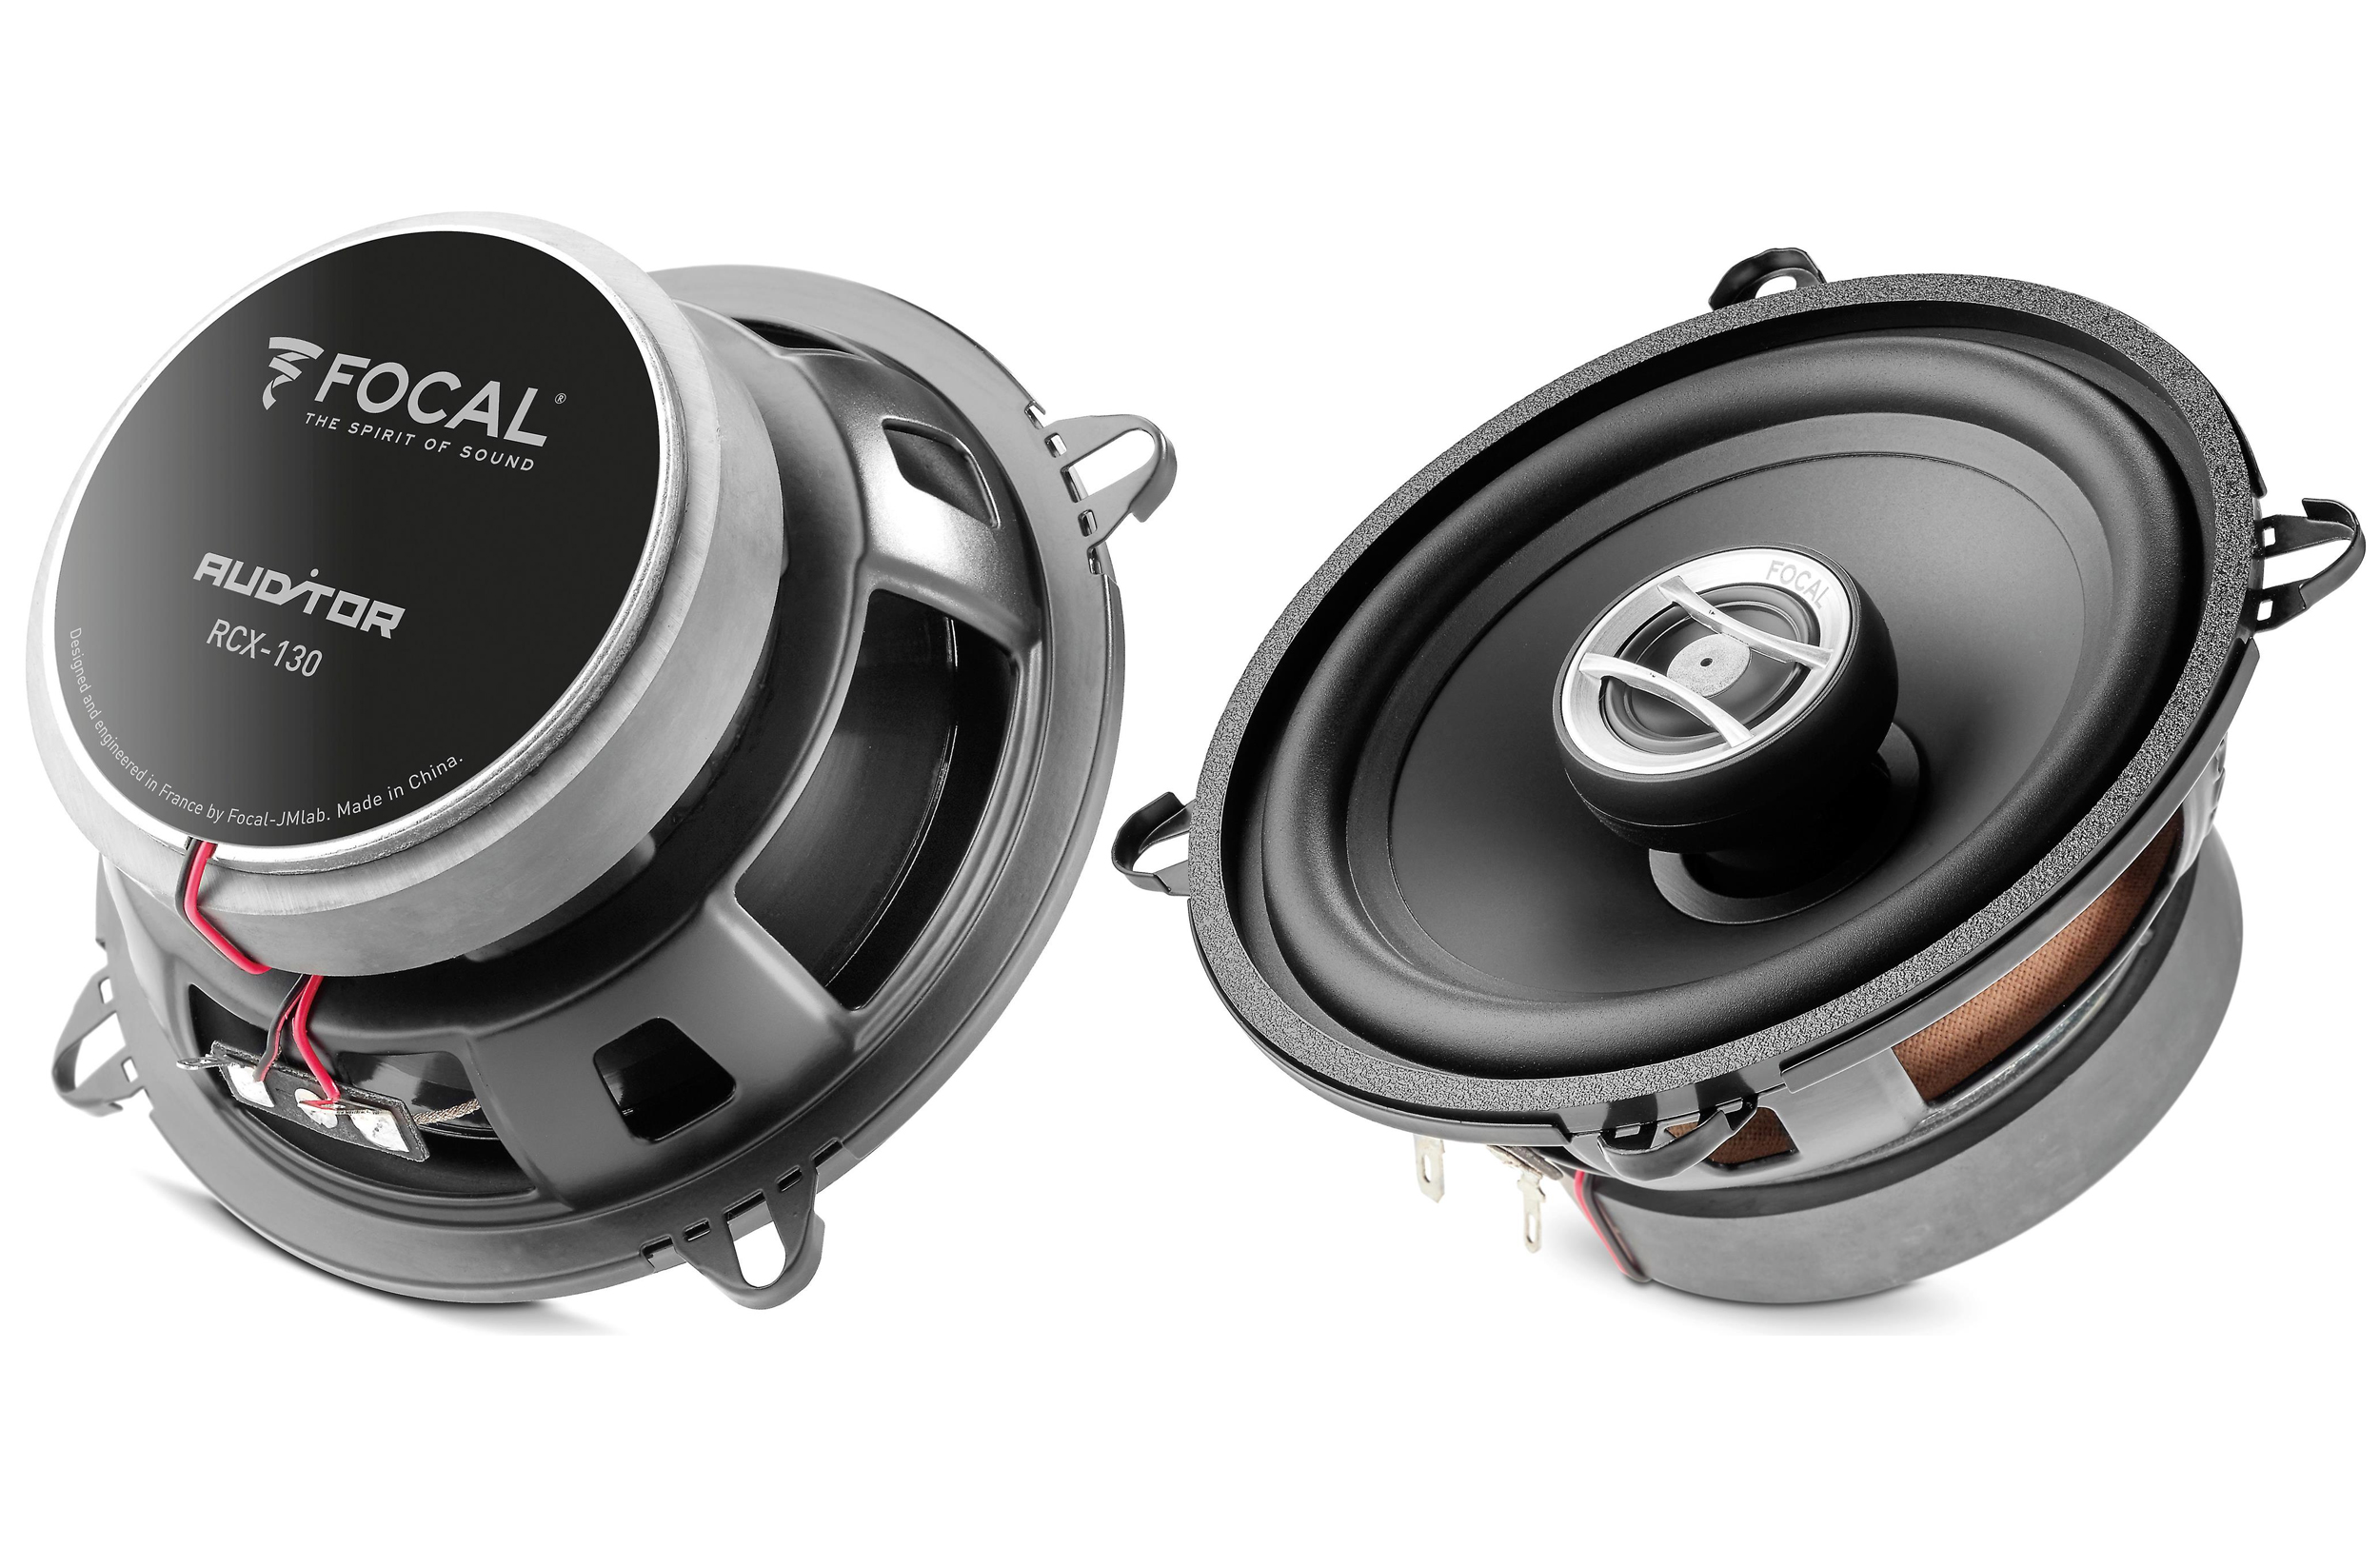 Focal RCX-130 Auditor Series 5 inch 100 Watts Max Power 2-Way Coaxial Kit